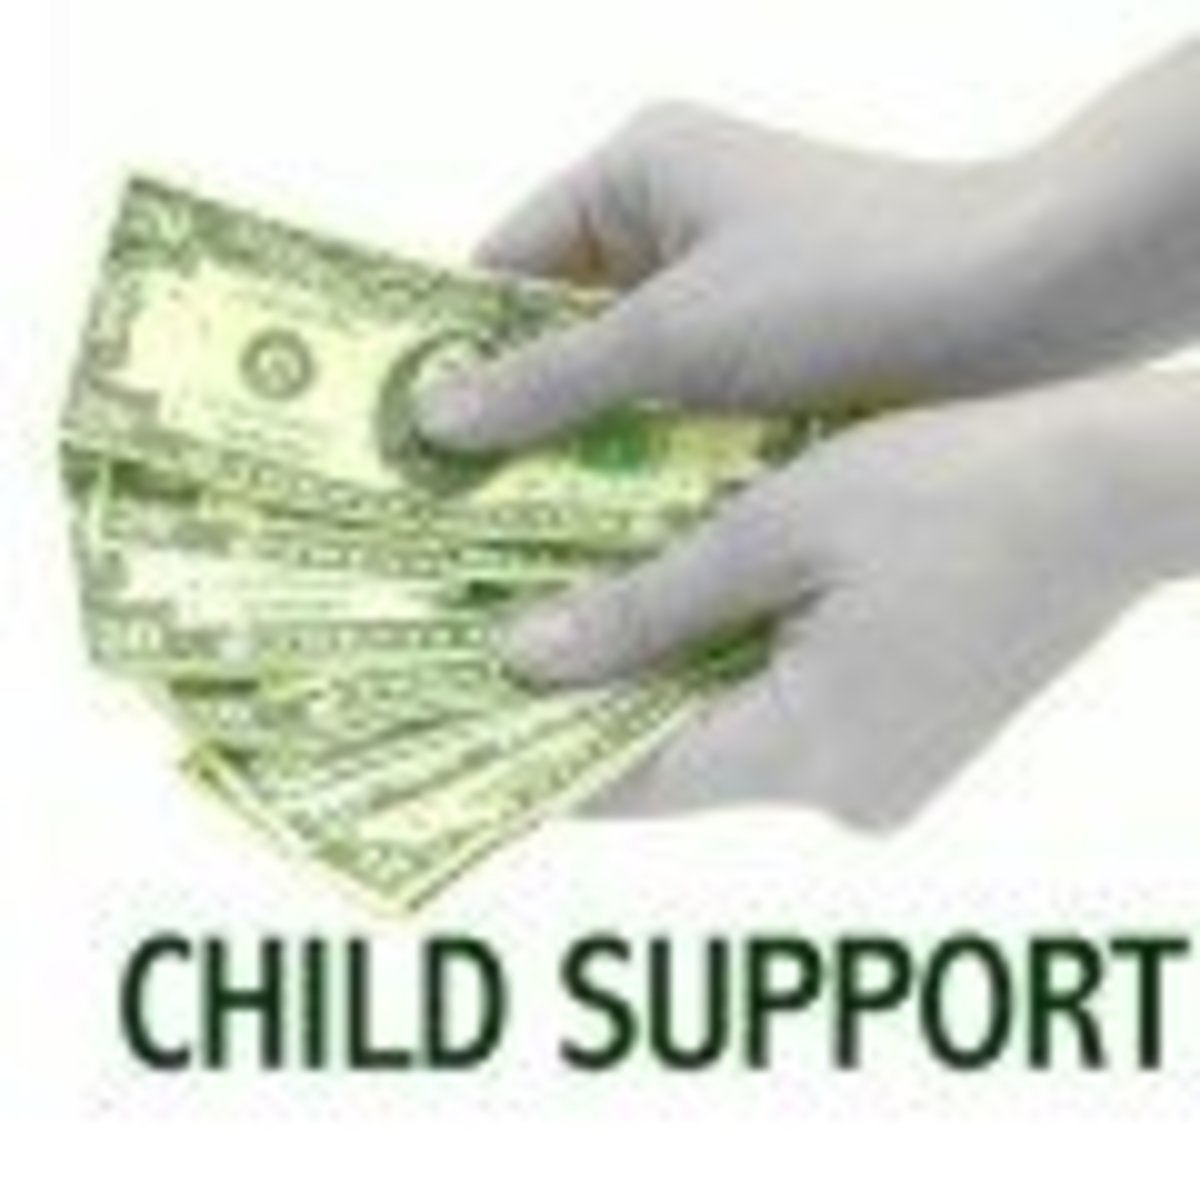 Can Child Support Freeze My Bank Account?